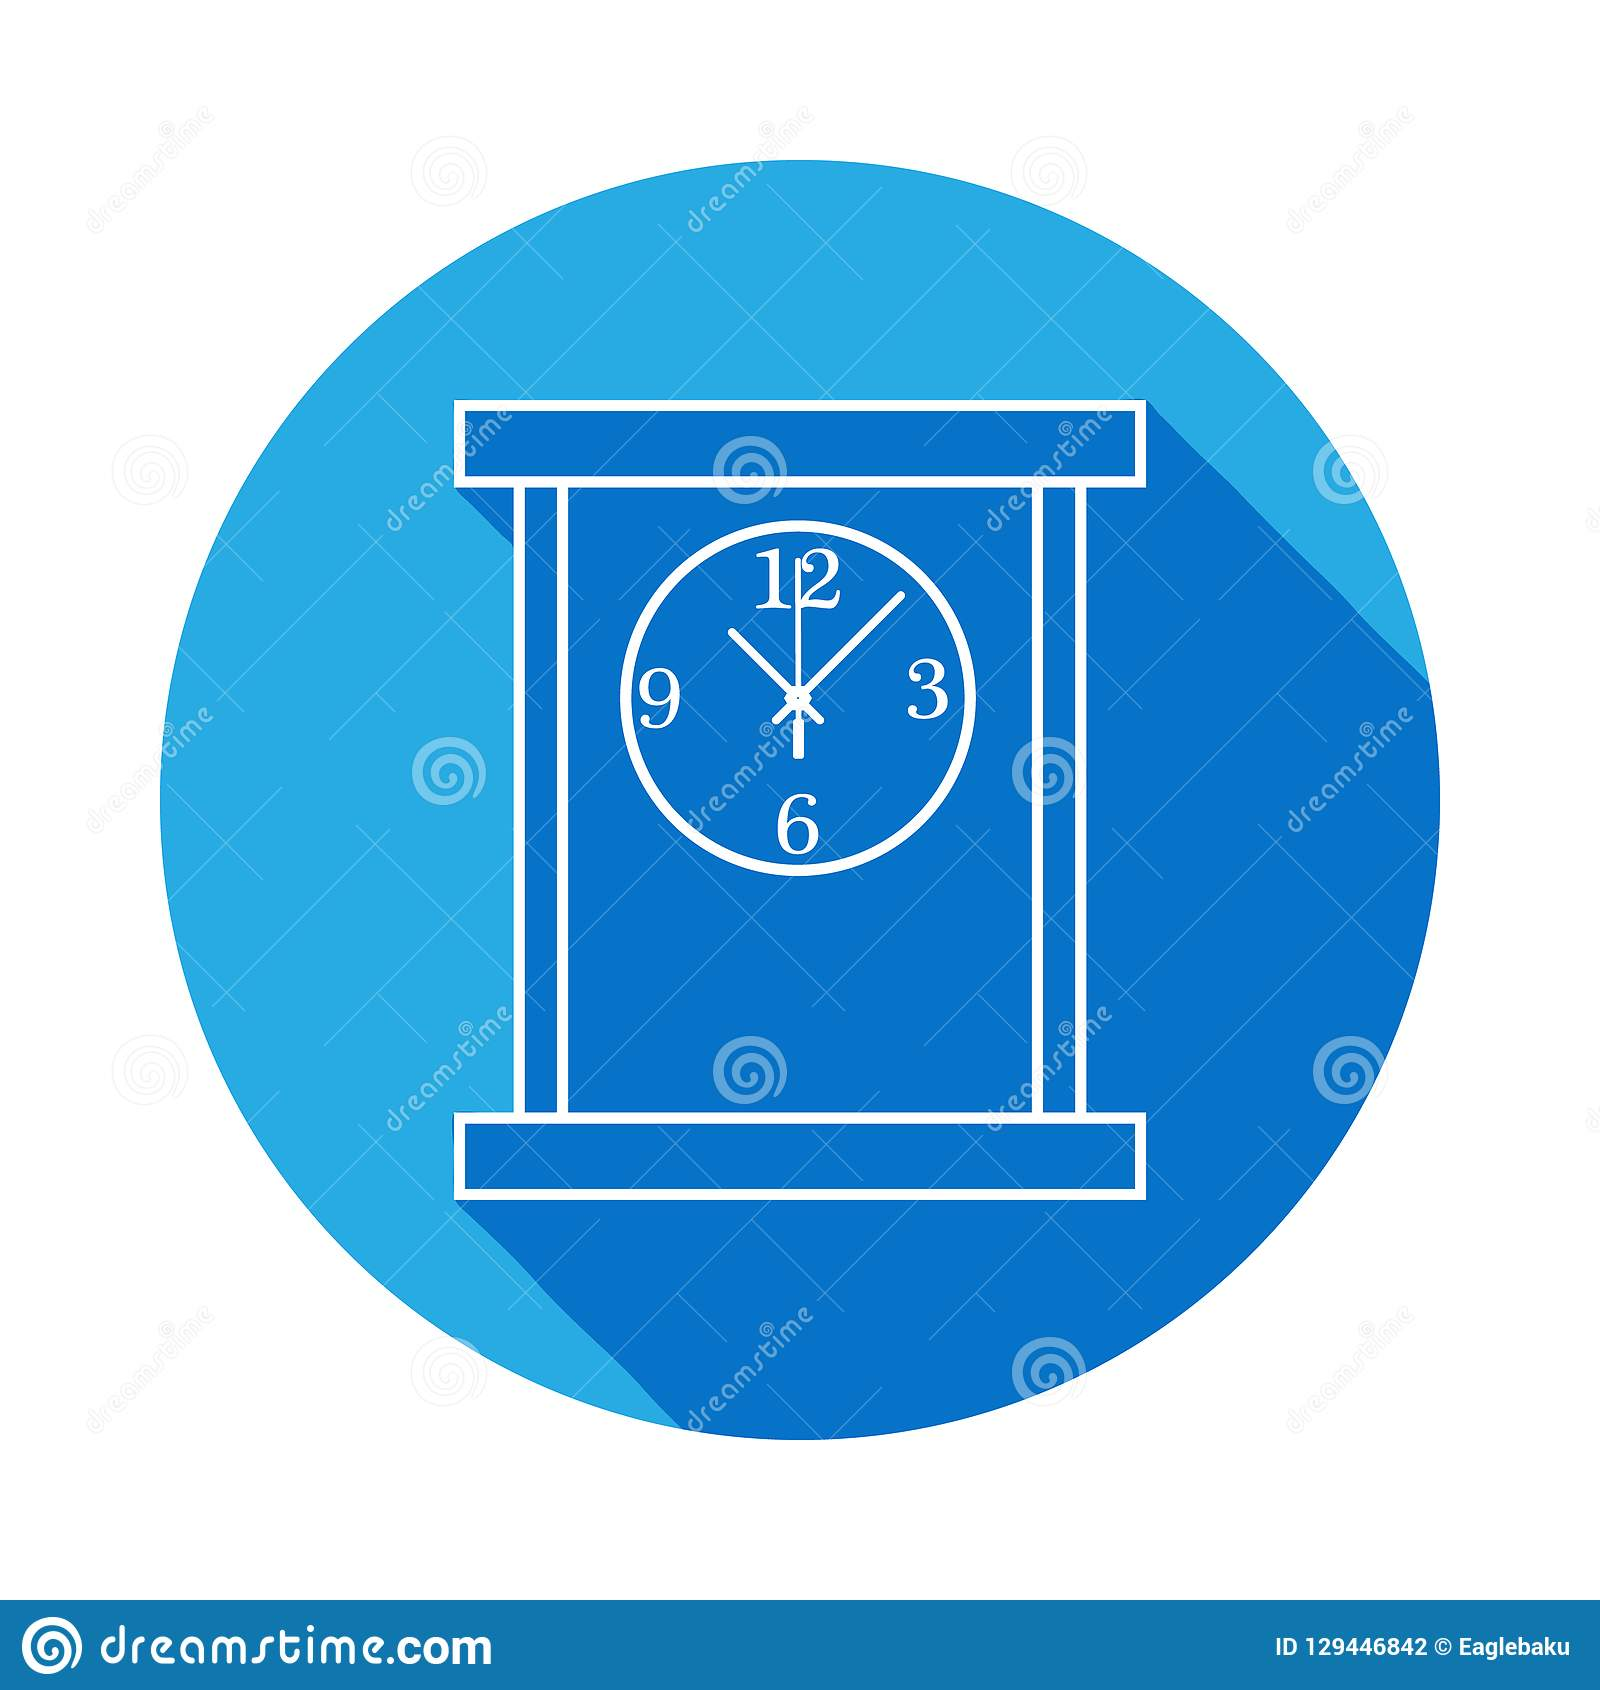 hight resolution of square table clock line icon clock icon with long shadow premium quality graphic design signs symbols collection simple icon for websites web design